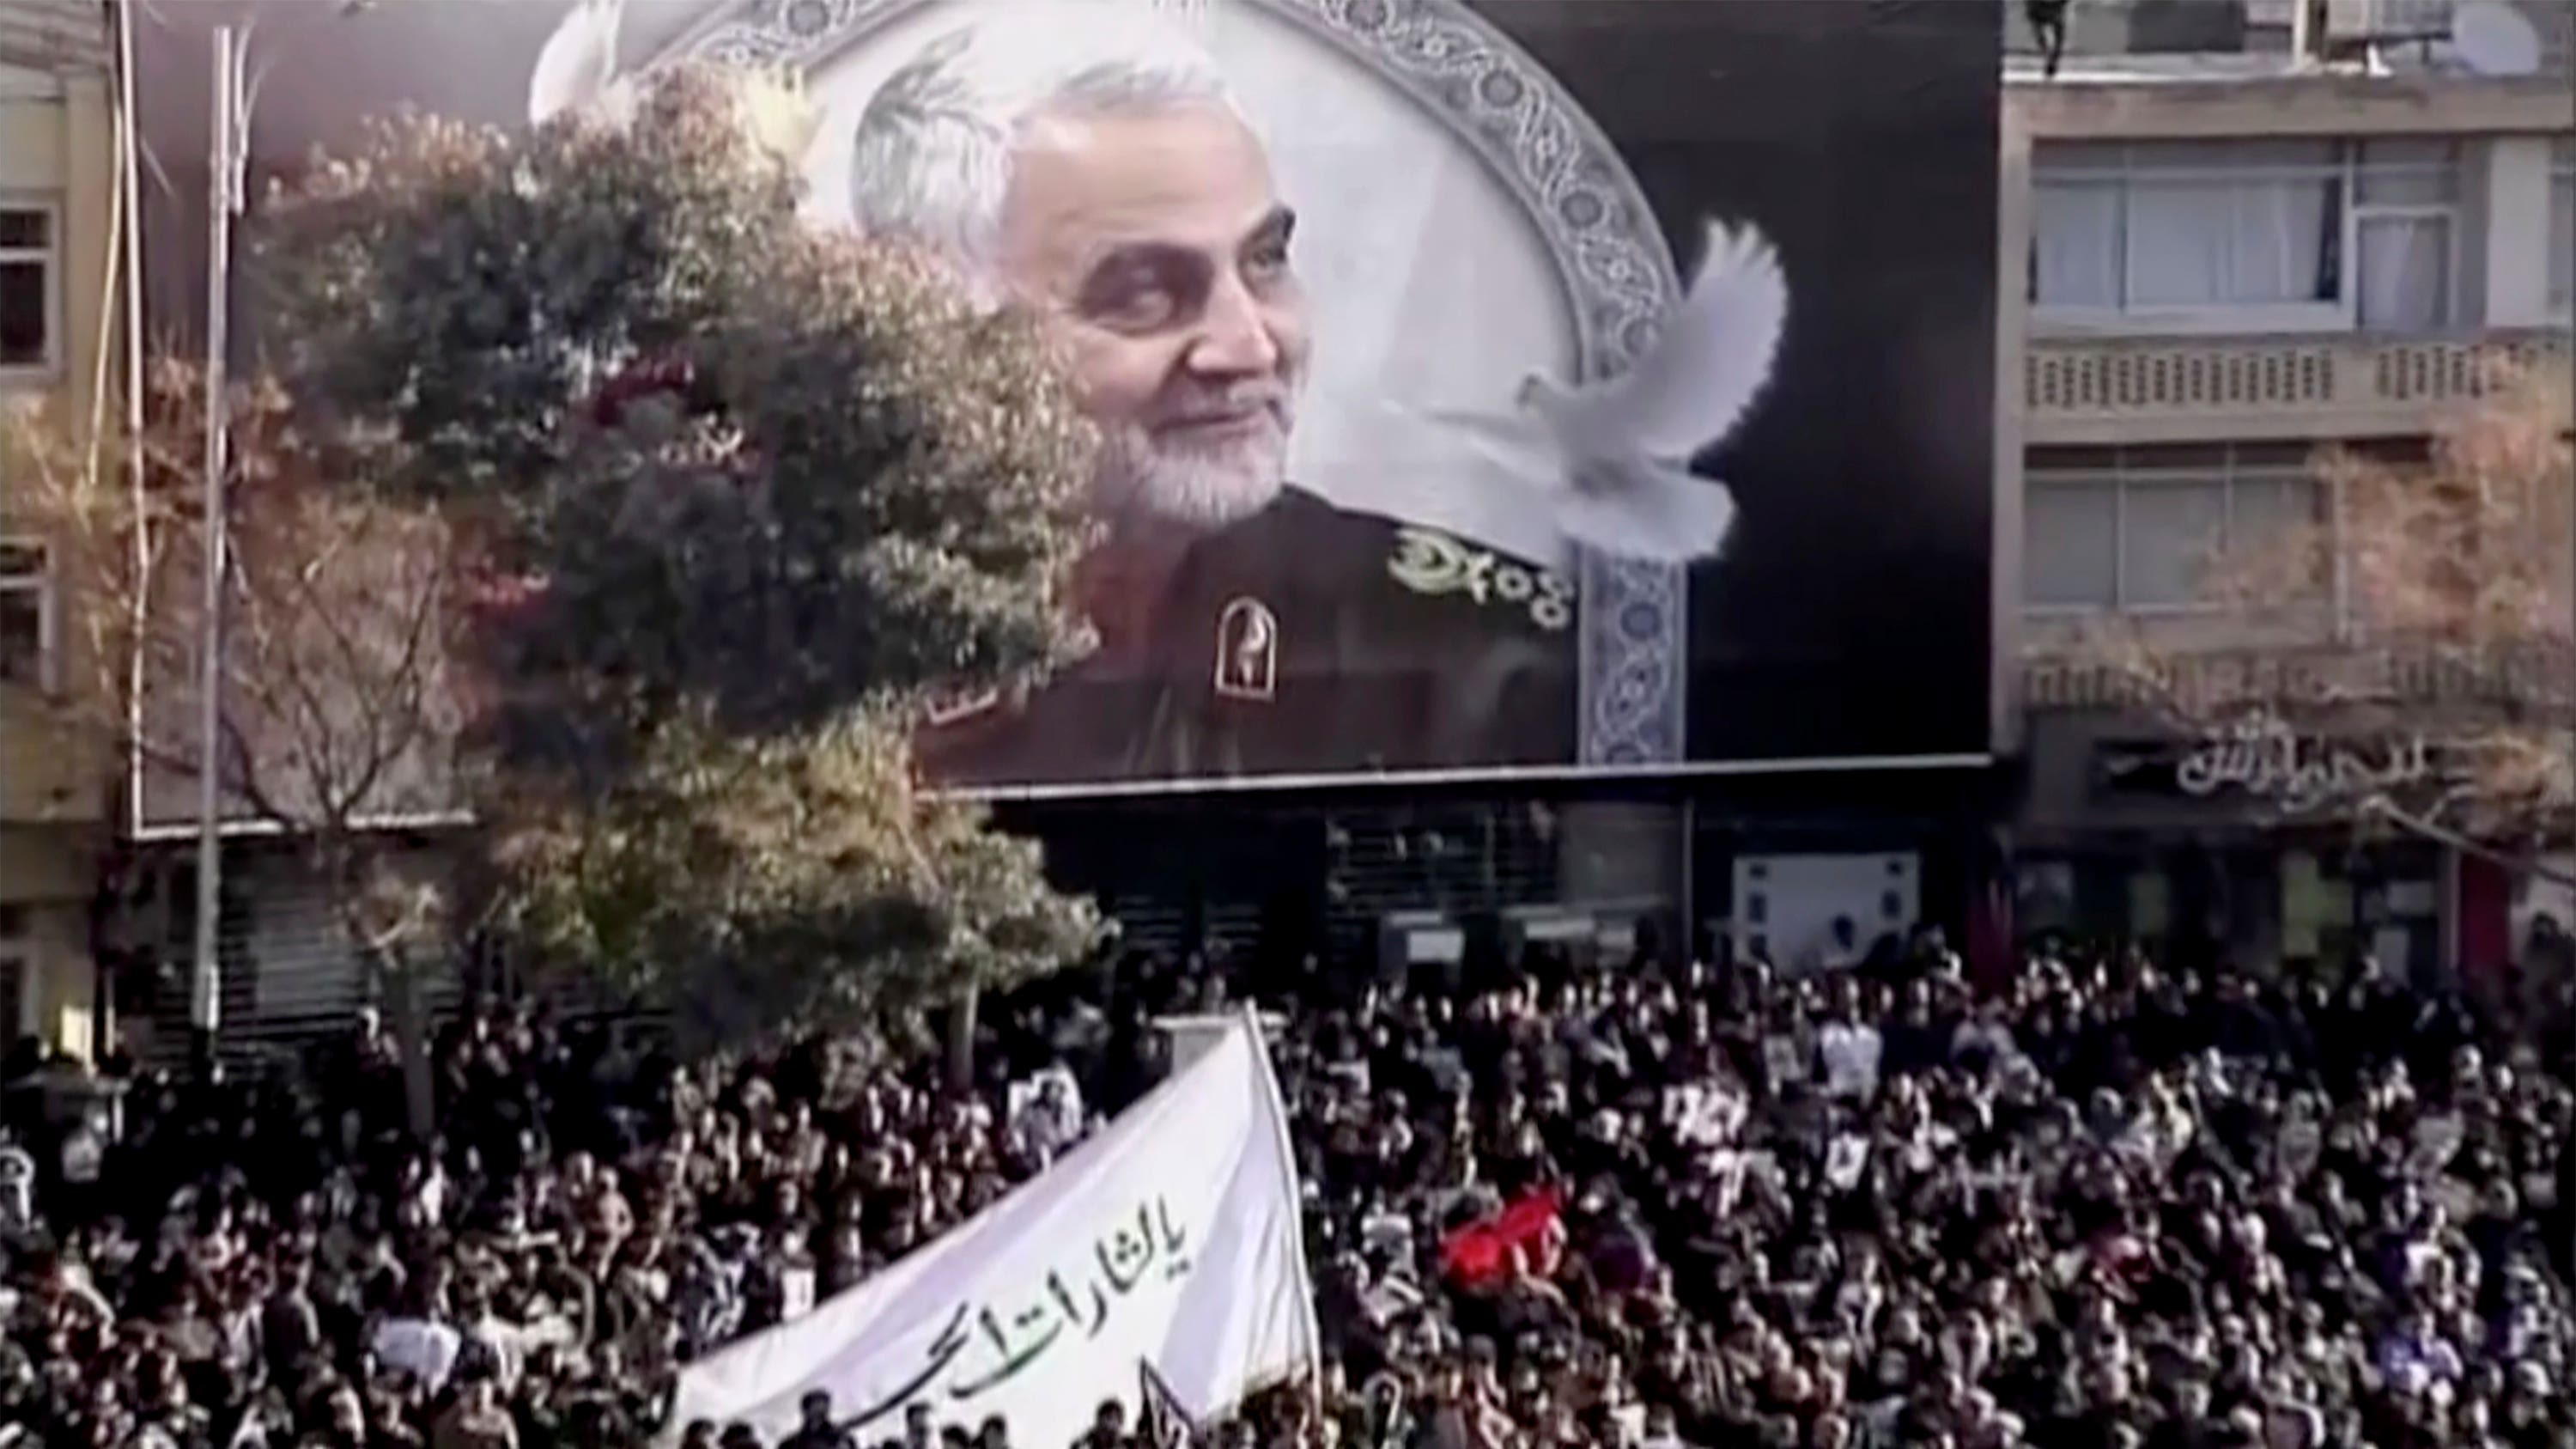 Mourners gather to pay their respects to General Qassem Soleimani in Kerman, Iran